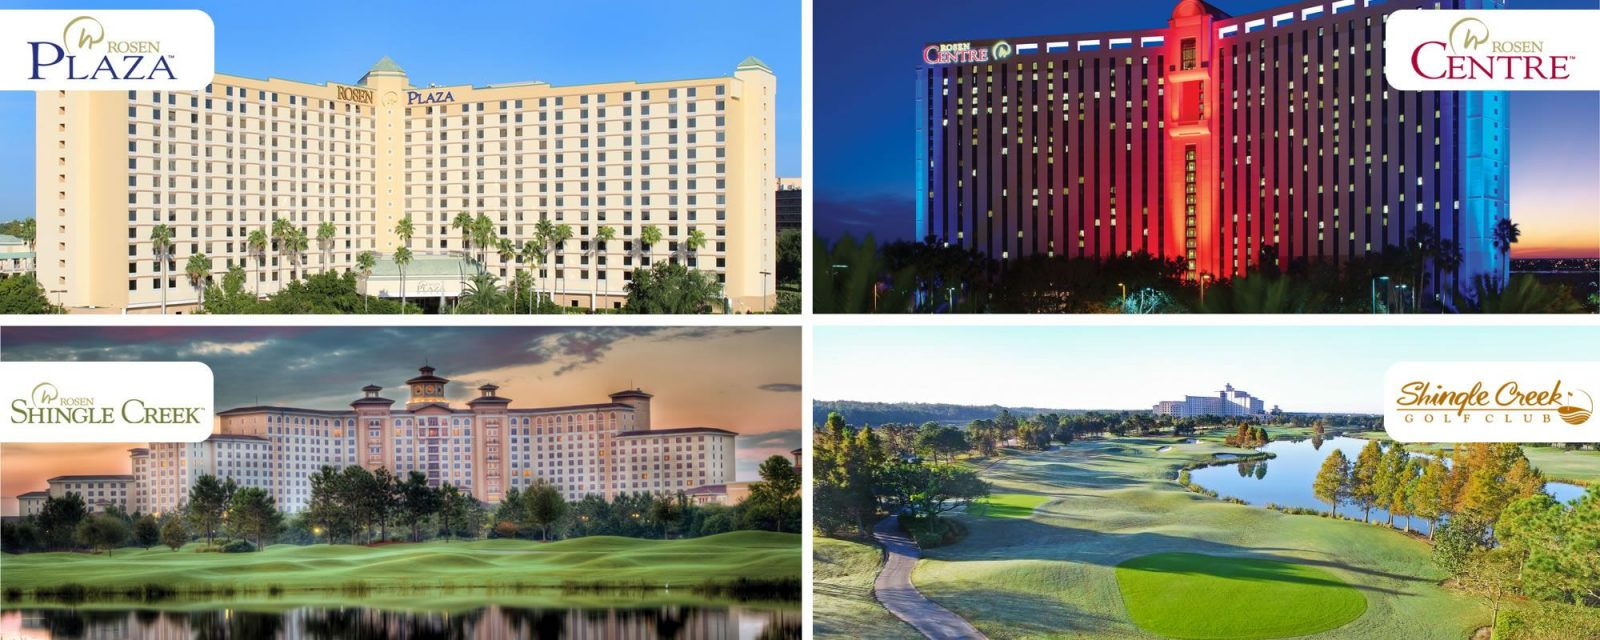 Orlando Hotels Rosen Meeting Vacation And Convention Resorts